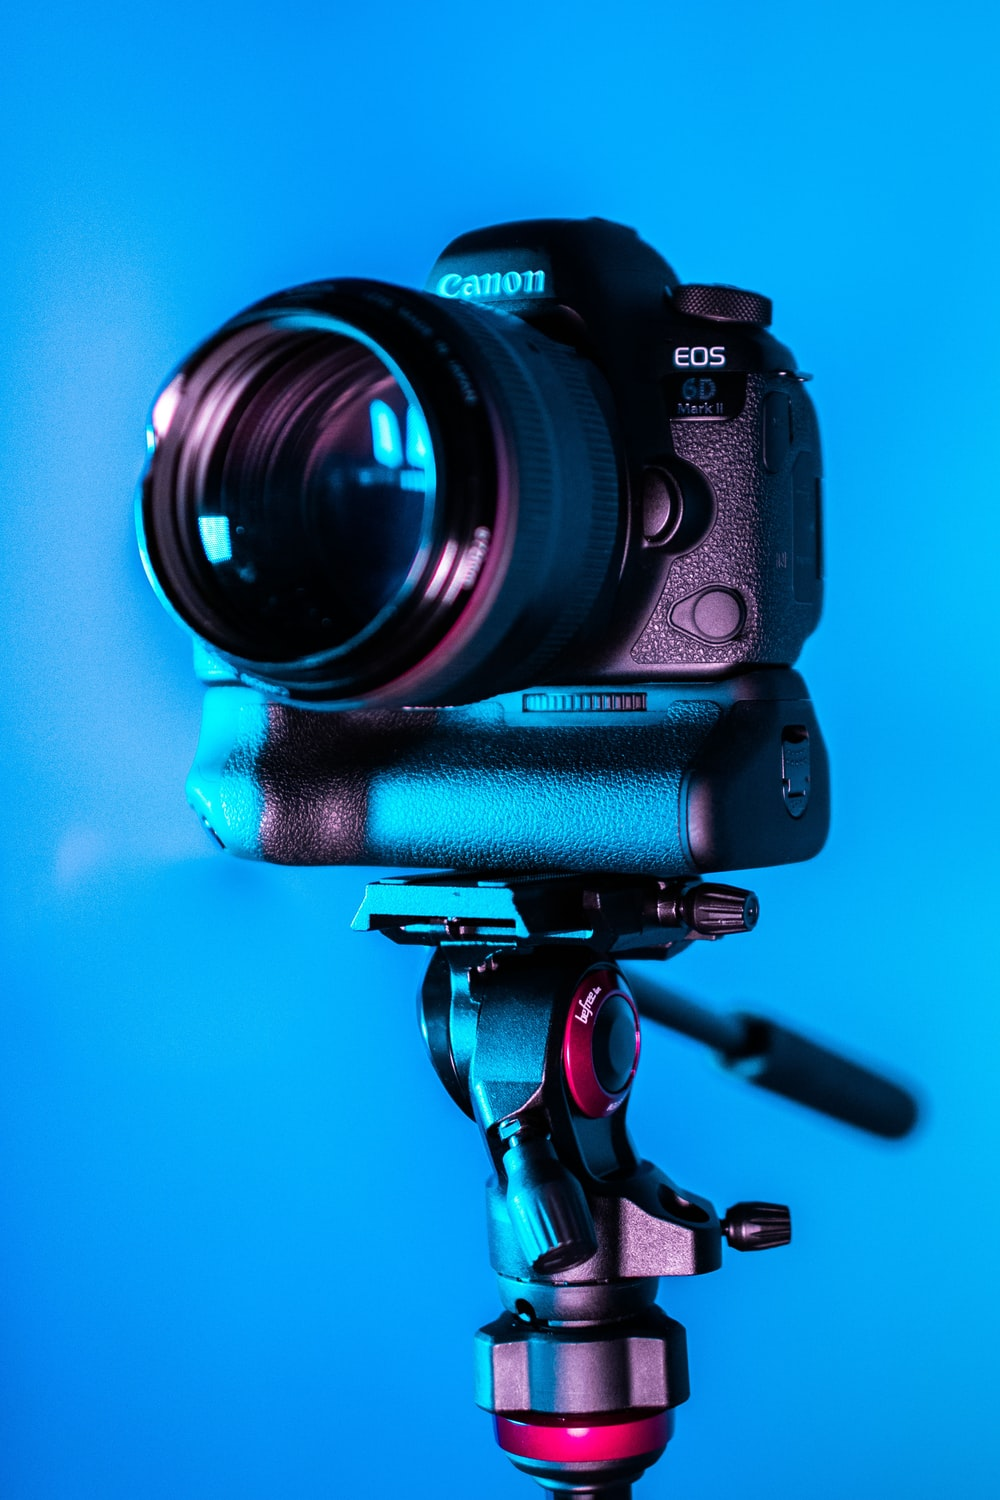 black Canon EOS DSLR camera with stand